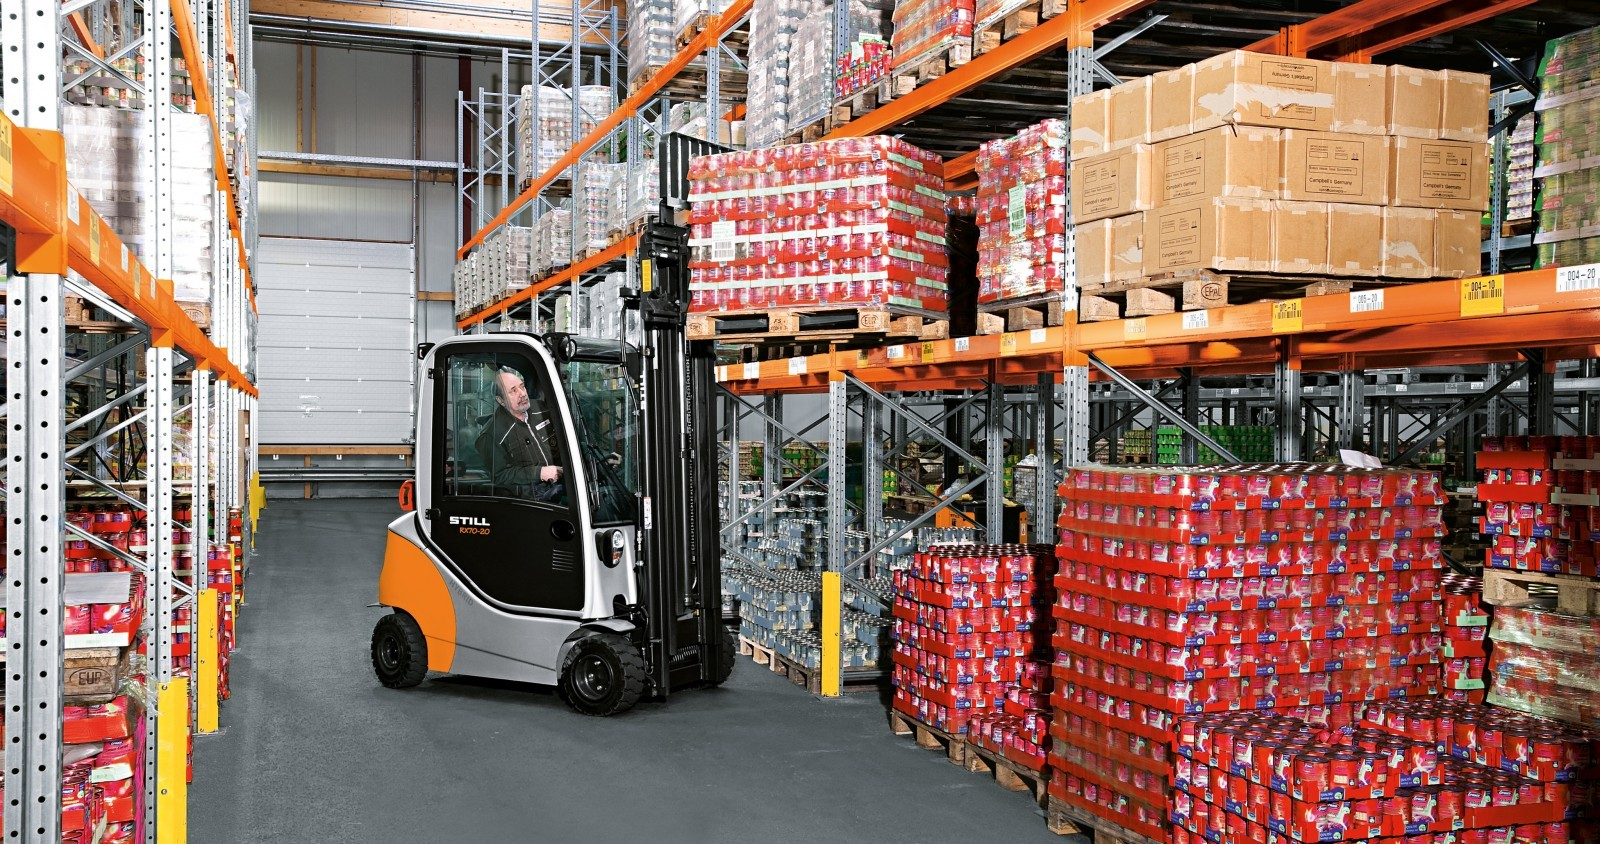 RX70 Diesel Forklift LP Gas Forklift Truck, forklift hire, contract hire